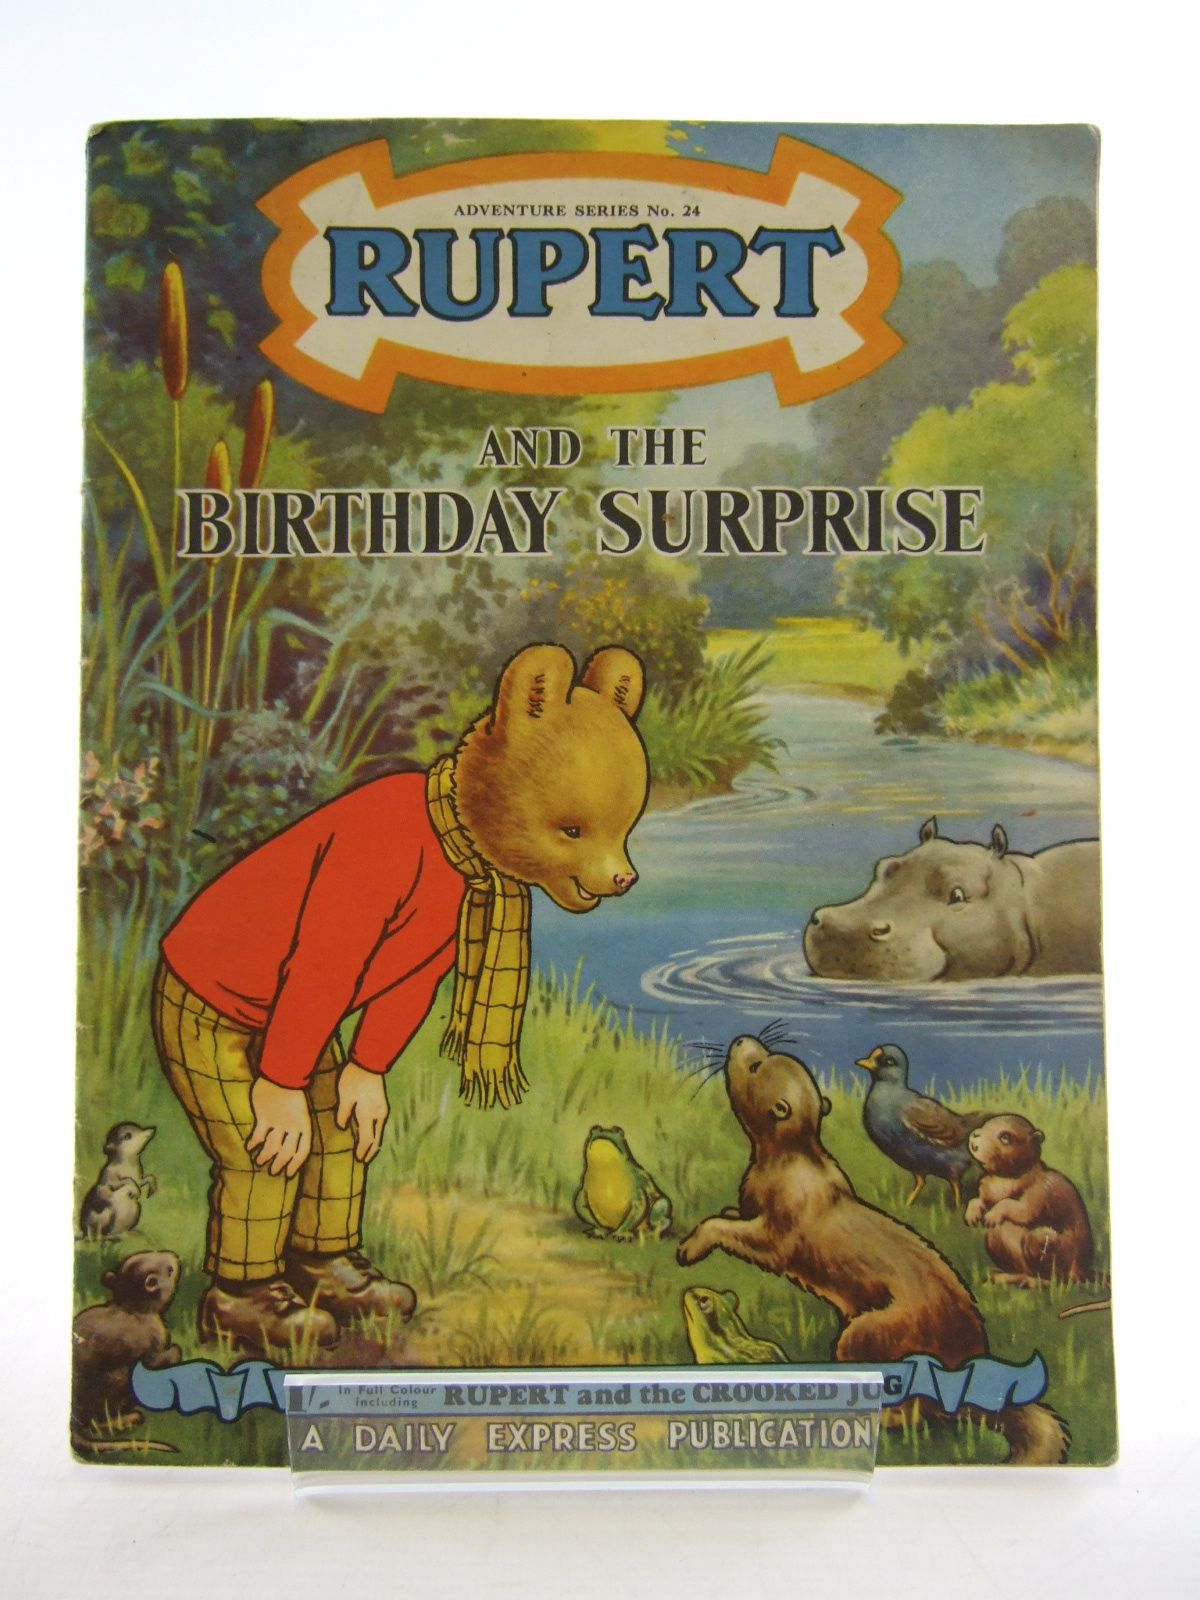 Photo of RUPERT ADVENTURE SERIES No. 24 - RUPERT AND THE BIRTHDAY SURPRISE written by Bestall, Alfred published by Daily Express (STOCK CODE: 1805370)  for sale by Stella & Rose's Books